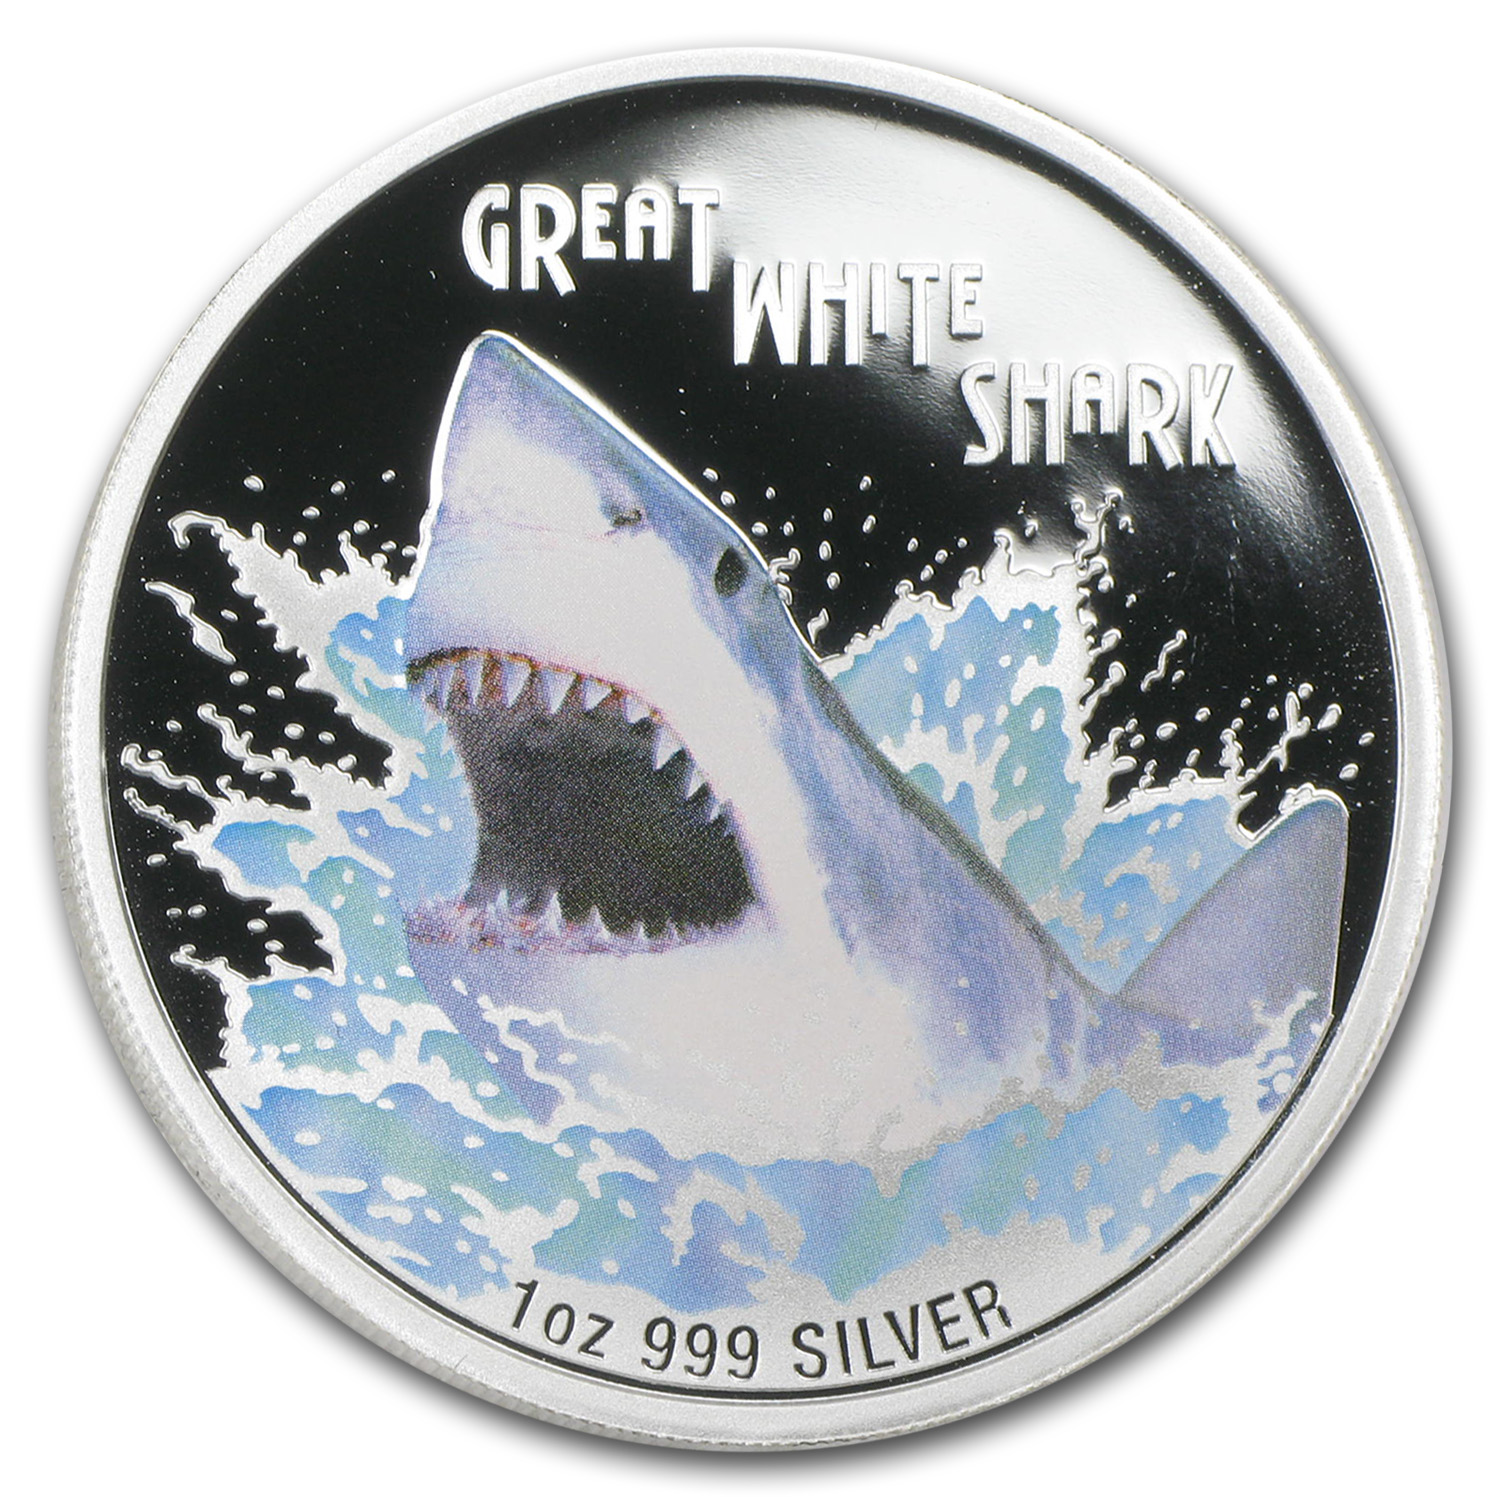 2007 Tuvalu 1 oz Silver Great White Shark Proof